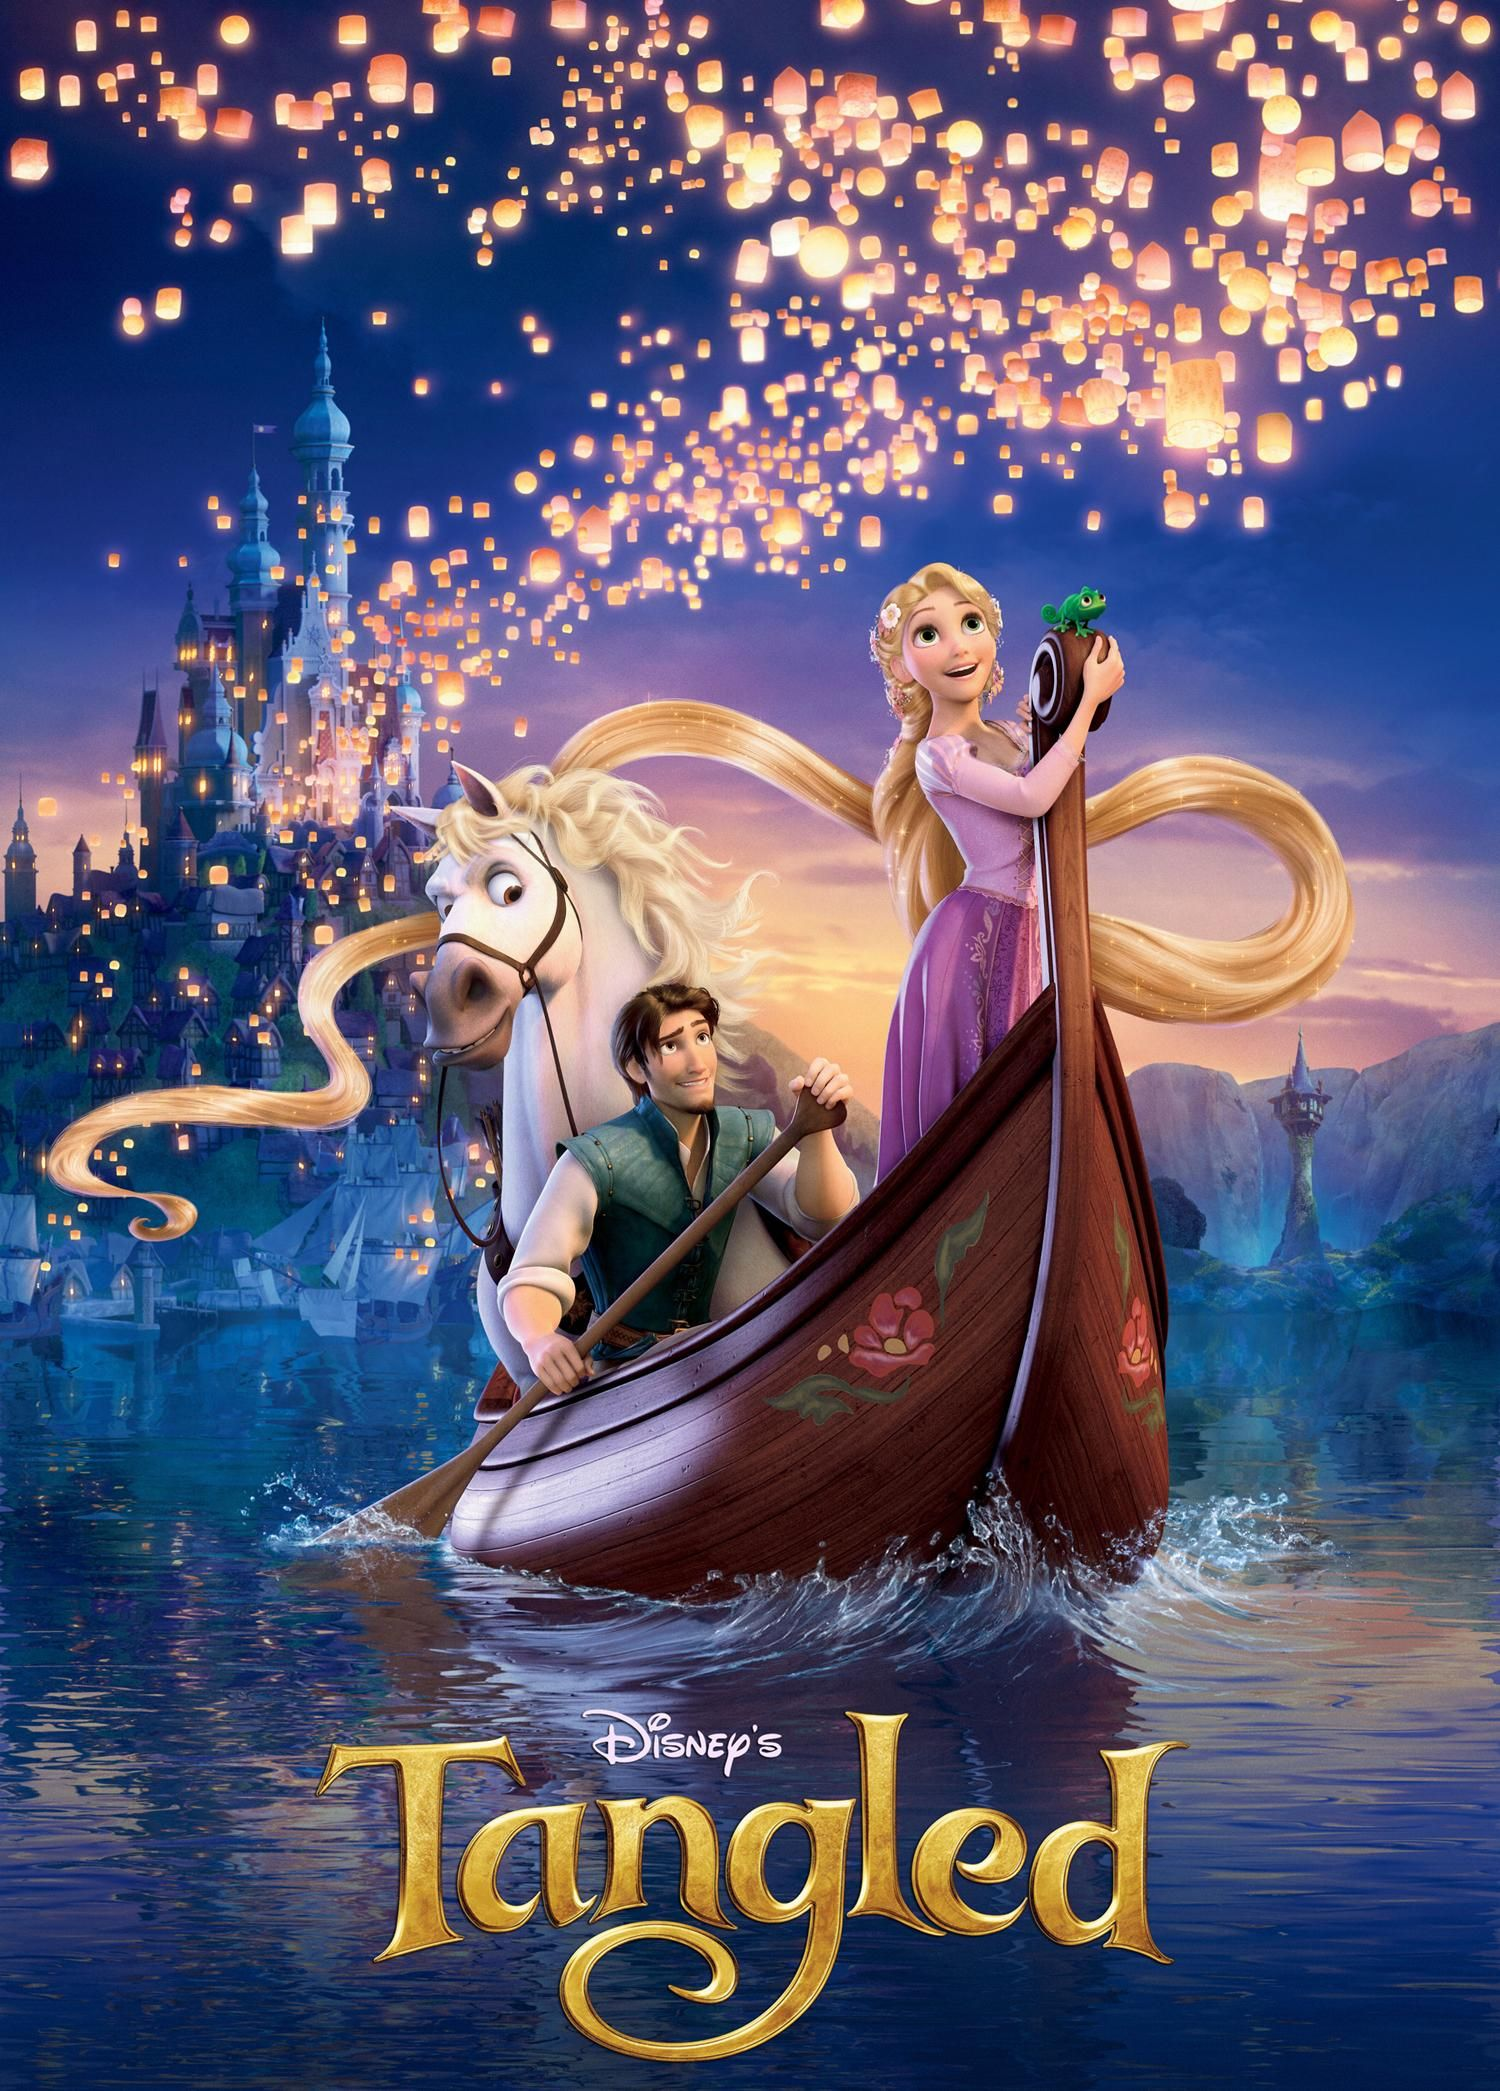 Tangled was just added to Netflix Instant Streaming. Needless to say, I just watched it again. It never grows old. And I cry every time i watch it, in three different parts. <3